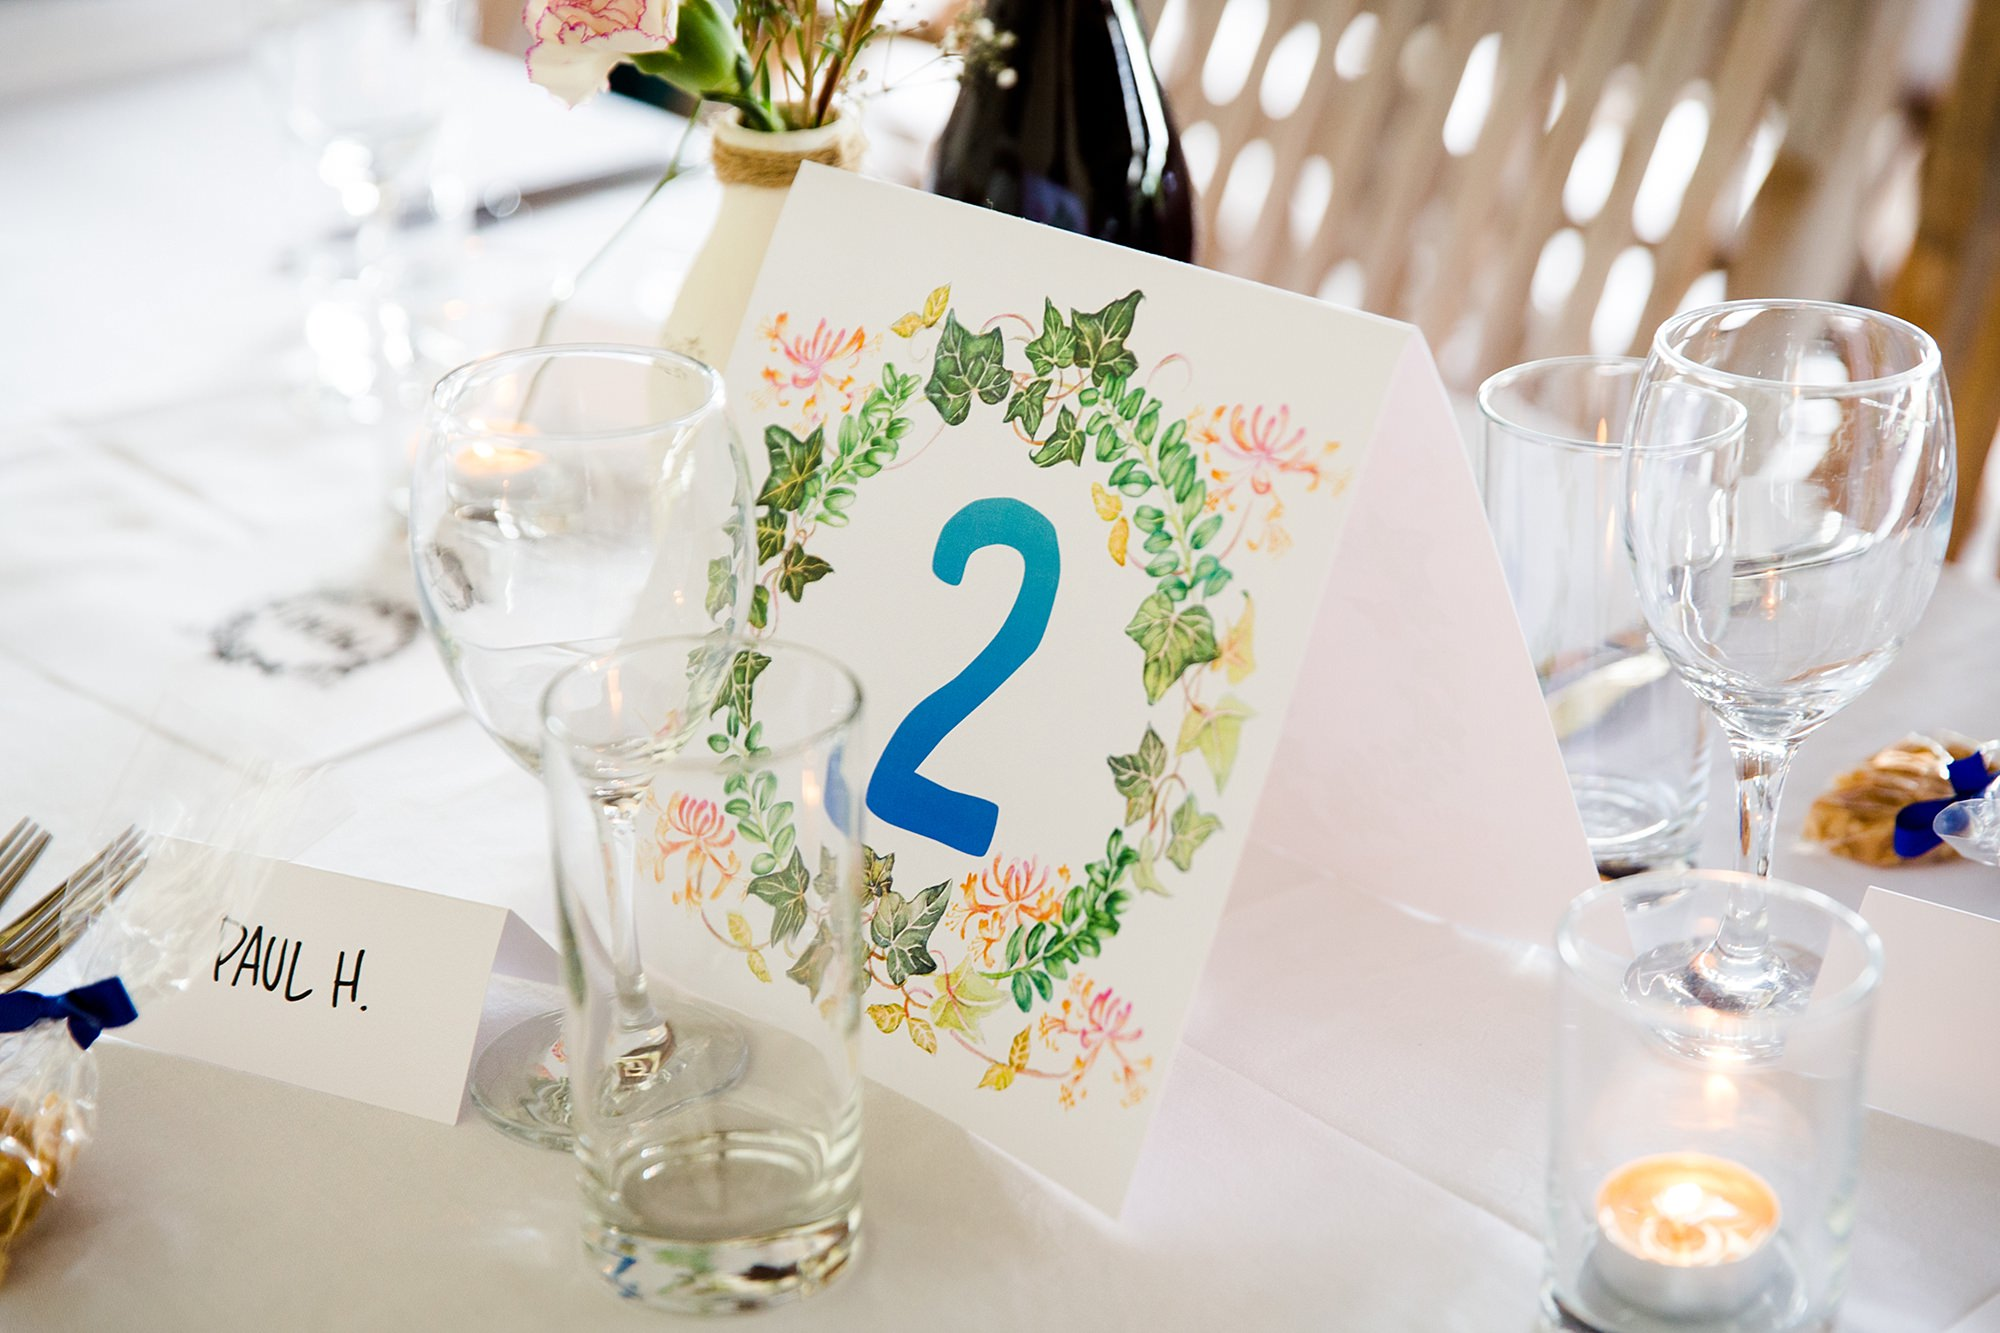 Isis Farmhouse Oxford Wedding close up detail of hand illustrated table number